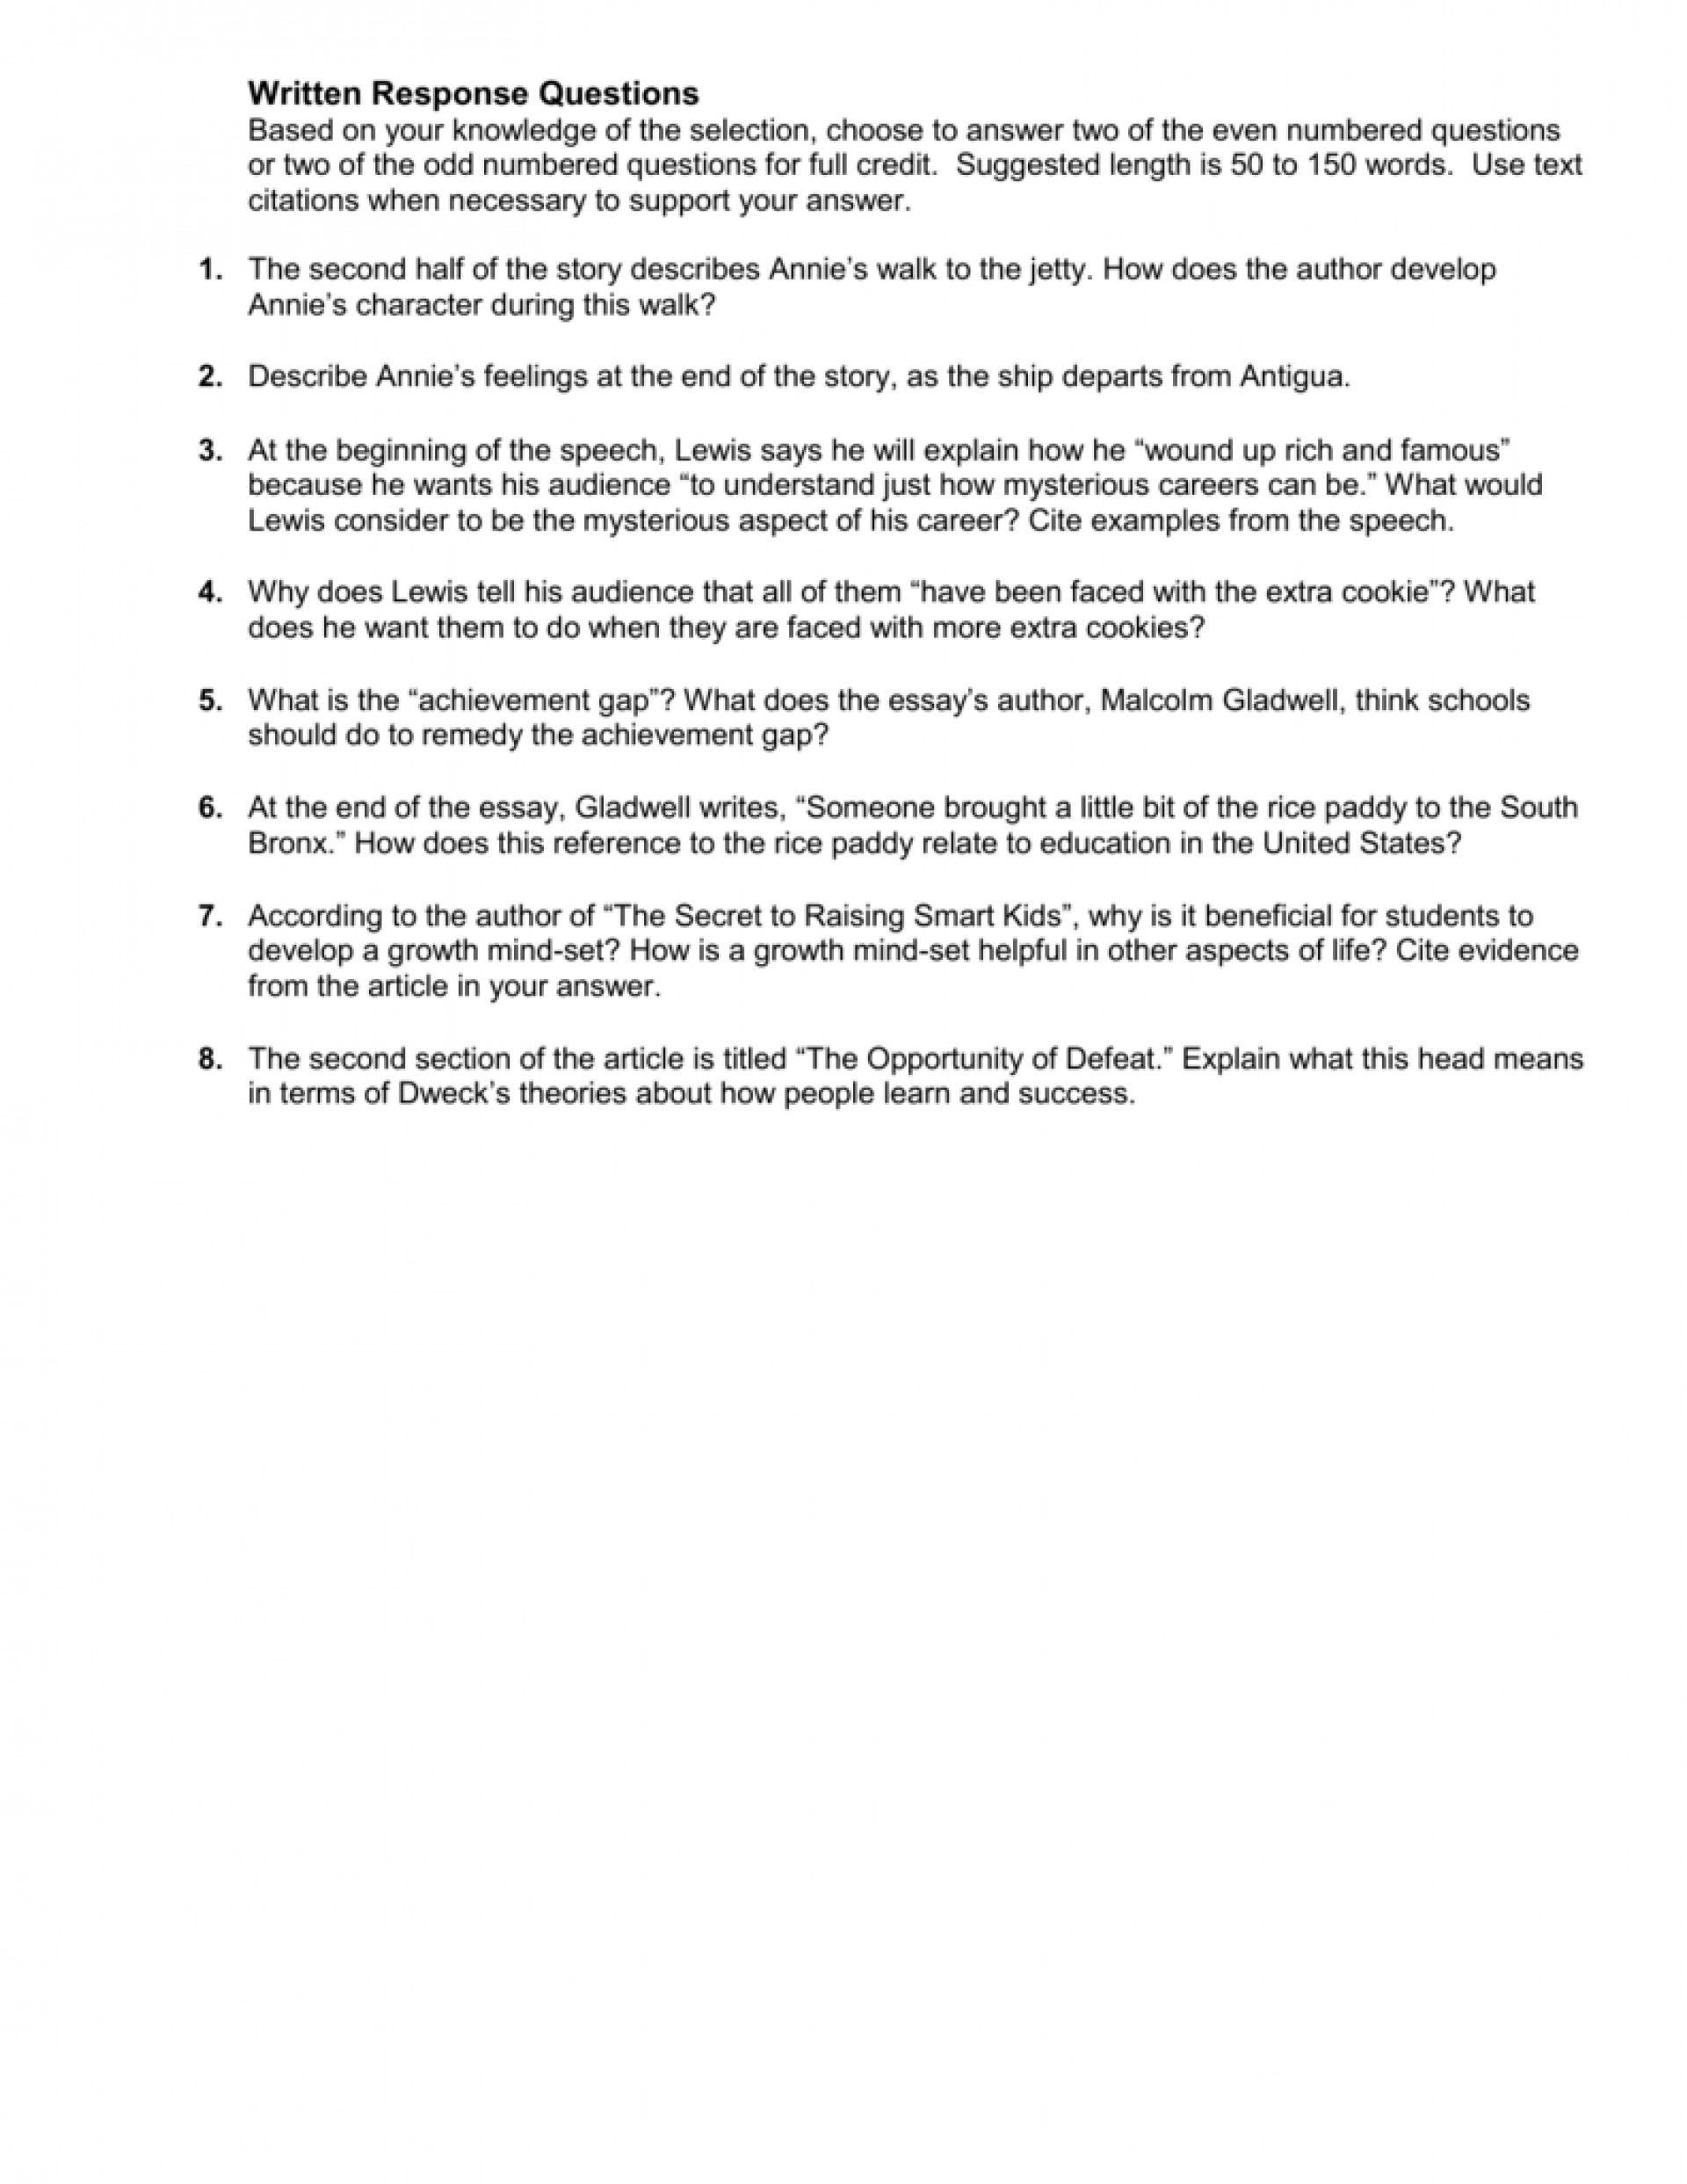 015 Success Definition Essay 007207601 1 Stirring Thesis Academic Statement For 1920